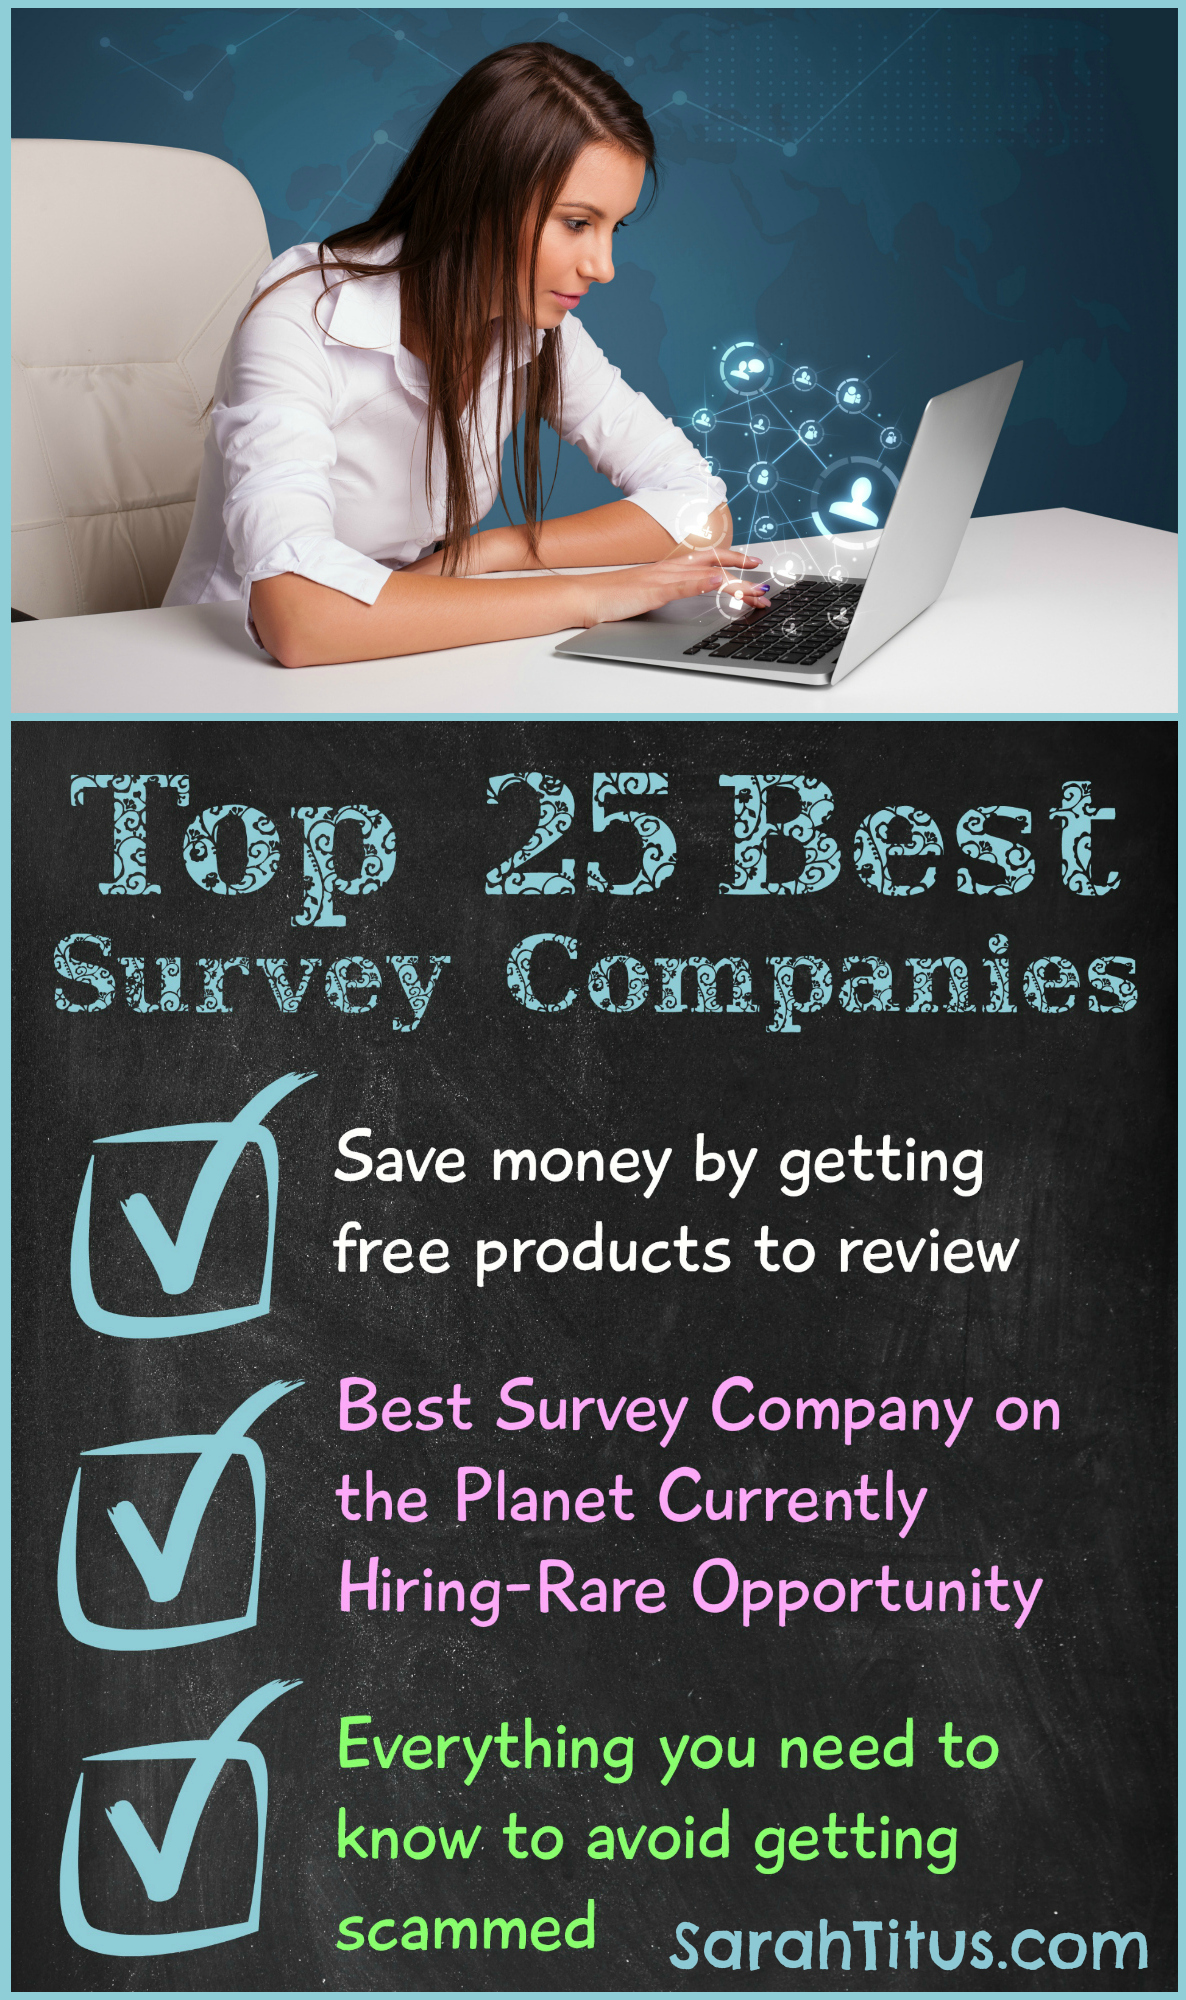 Best 25 Ng Mui Ideas Only On Pinterest: Top 25 Best Survey Companies